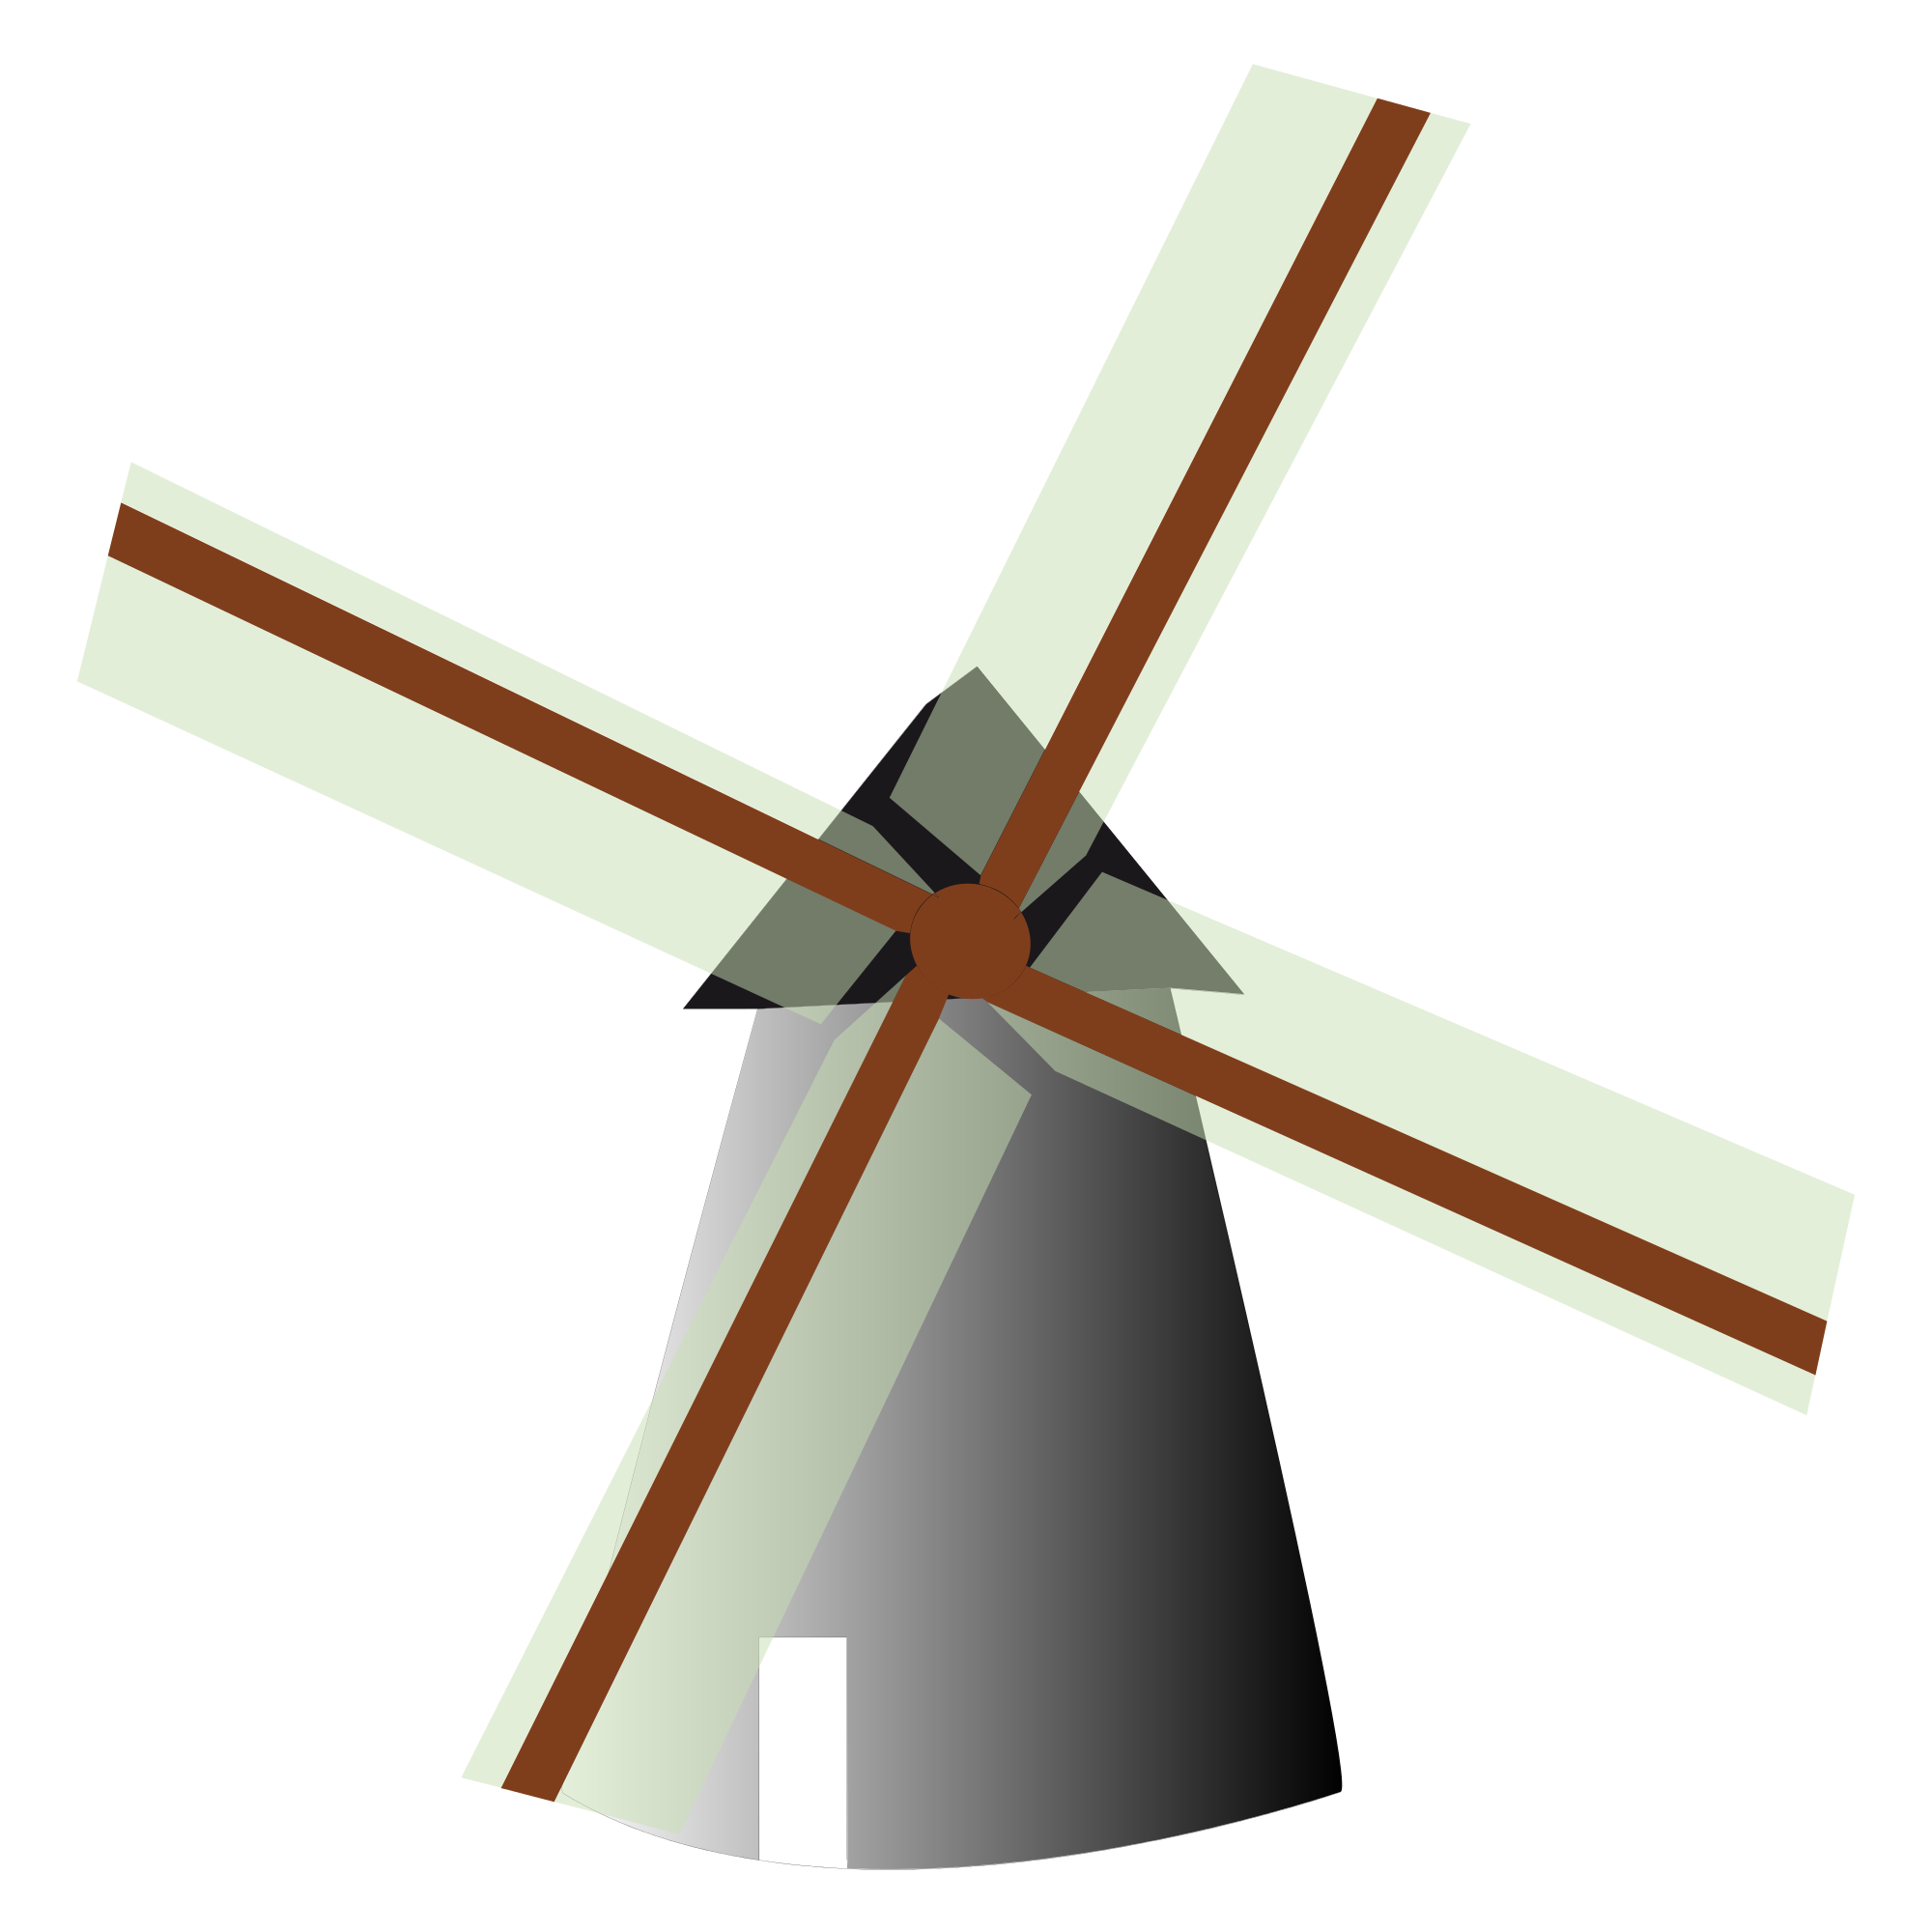 Windmill svg #1, Download drawings